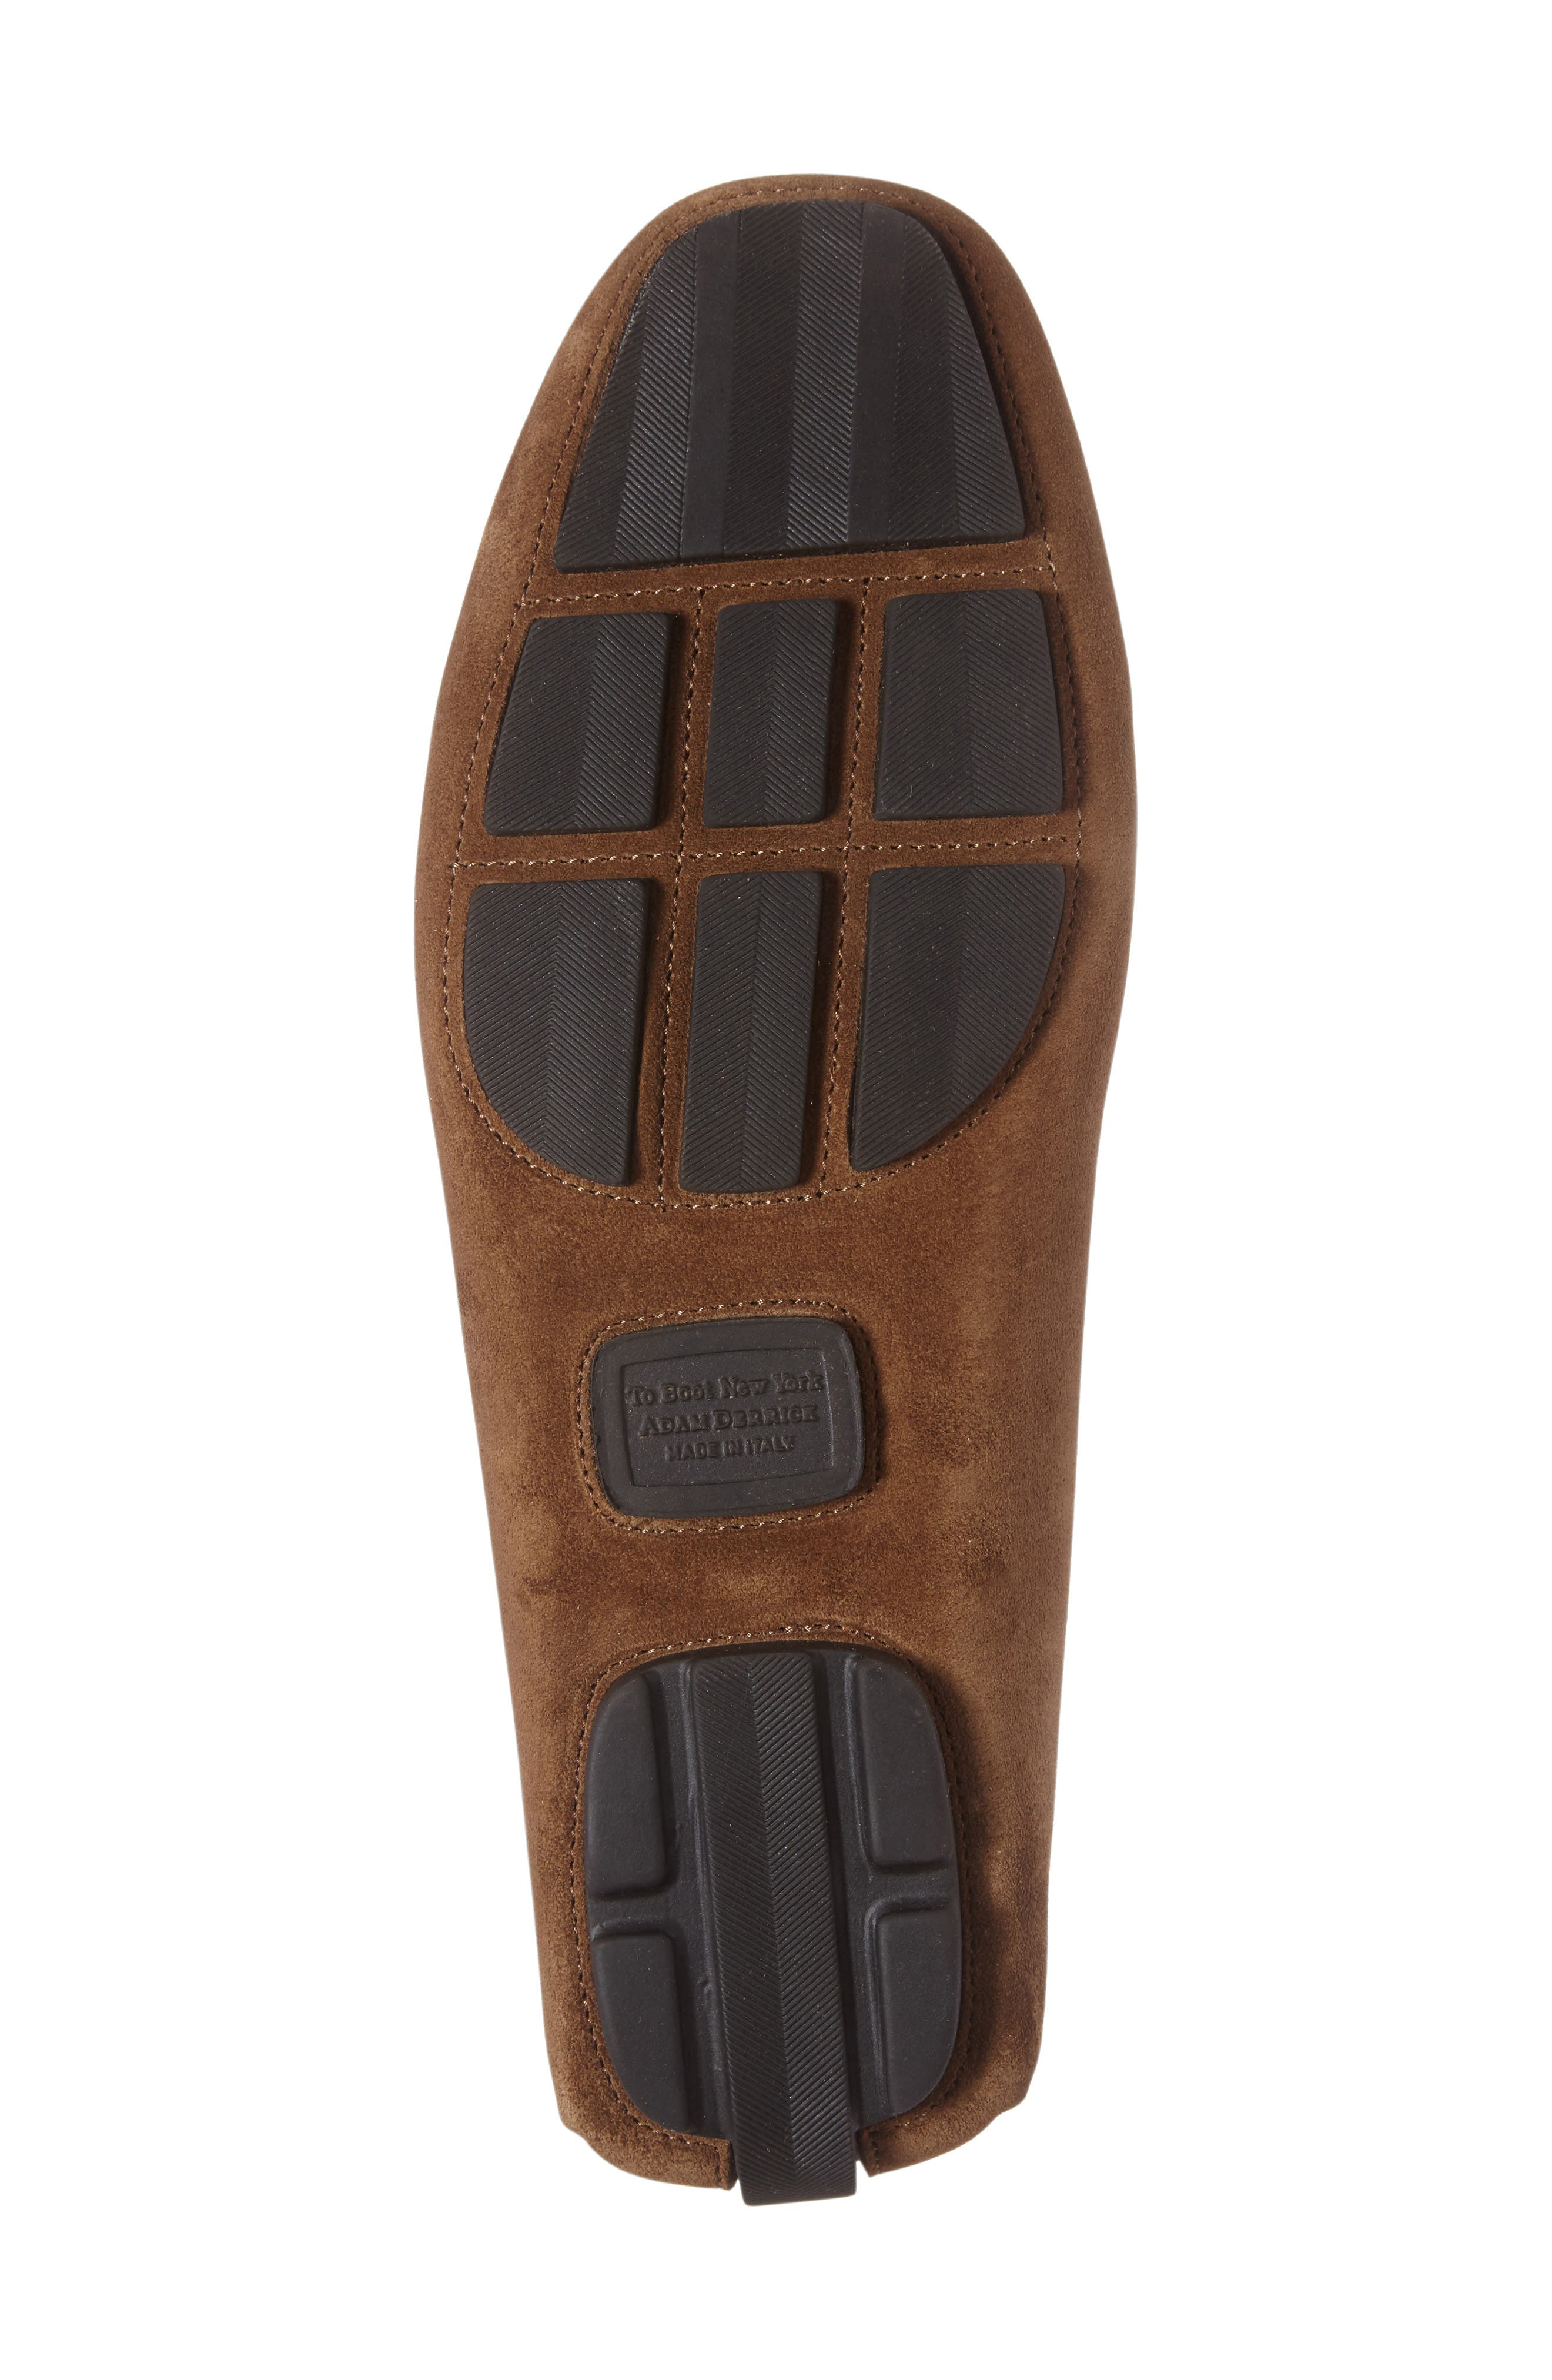 Mitchum Driving Shoe,                             Alternate thumbnail 4, color,                             Brown/ Brown Suede